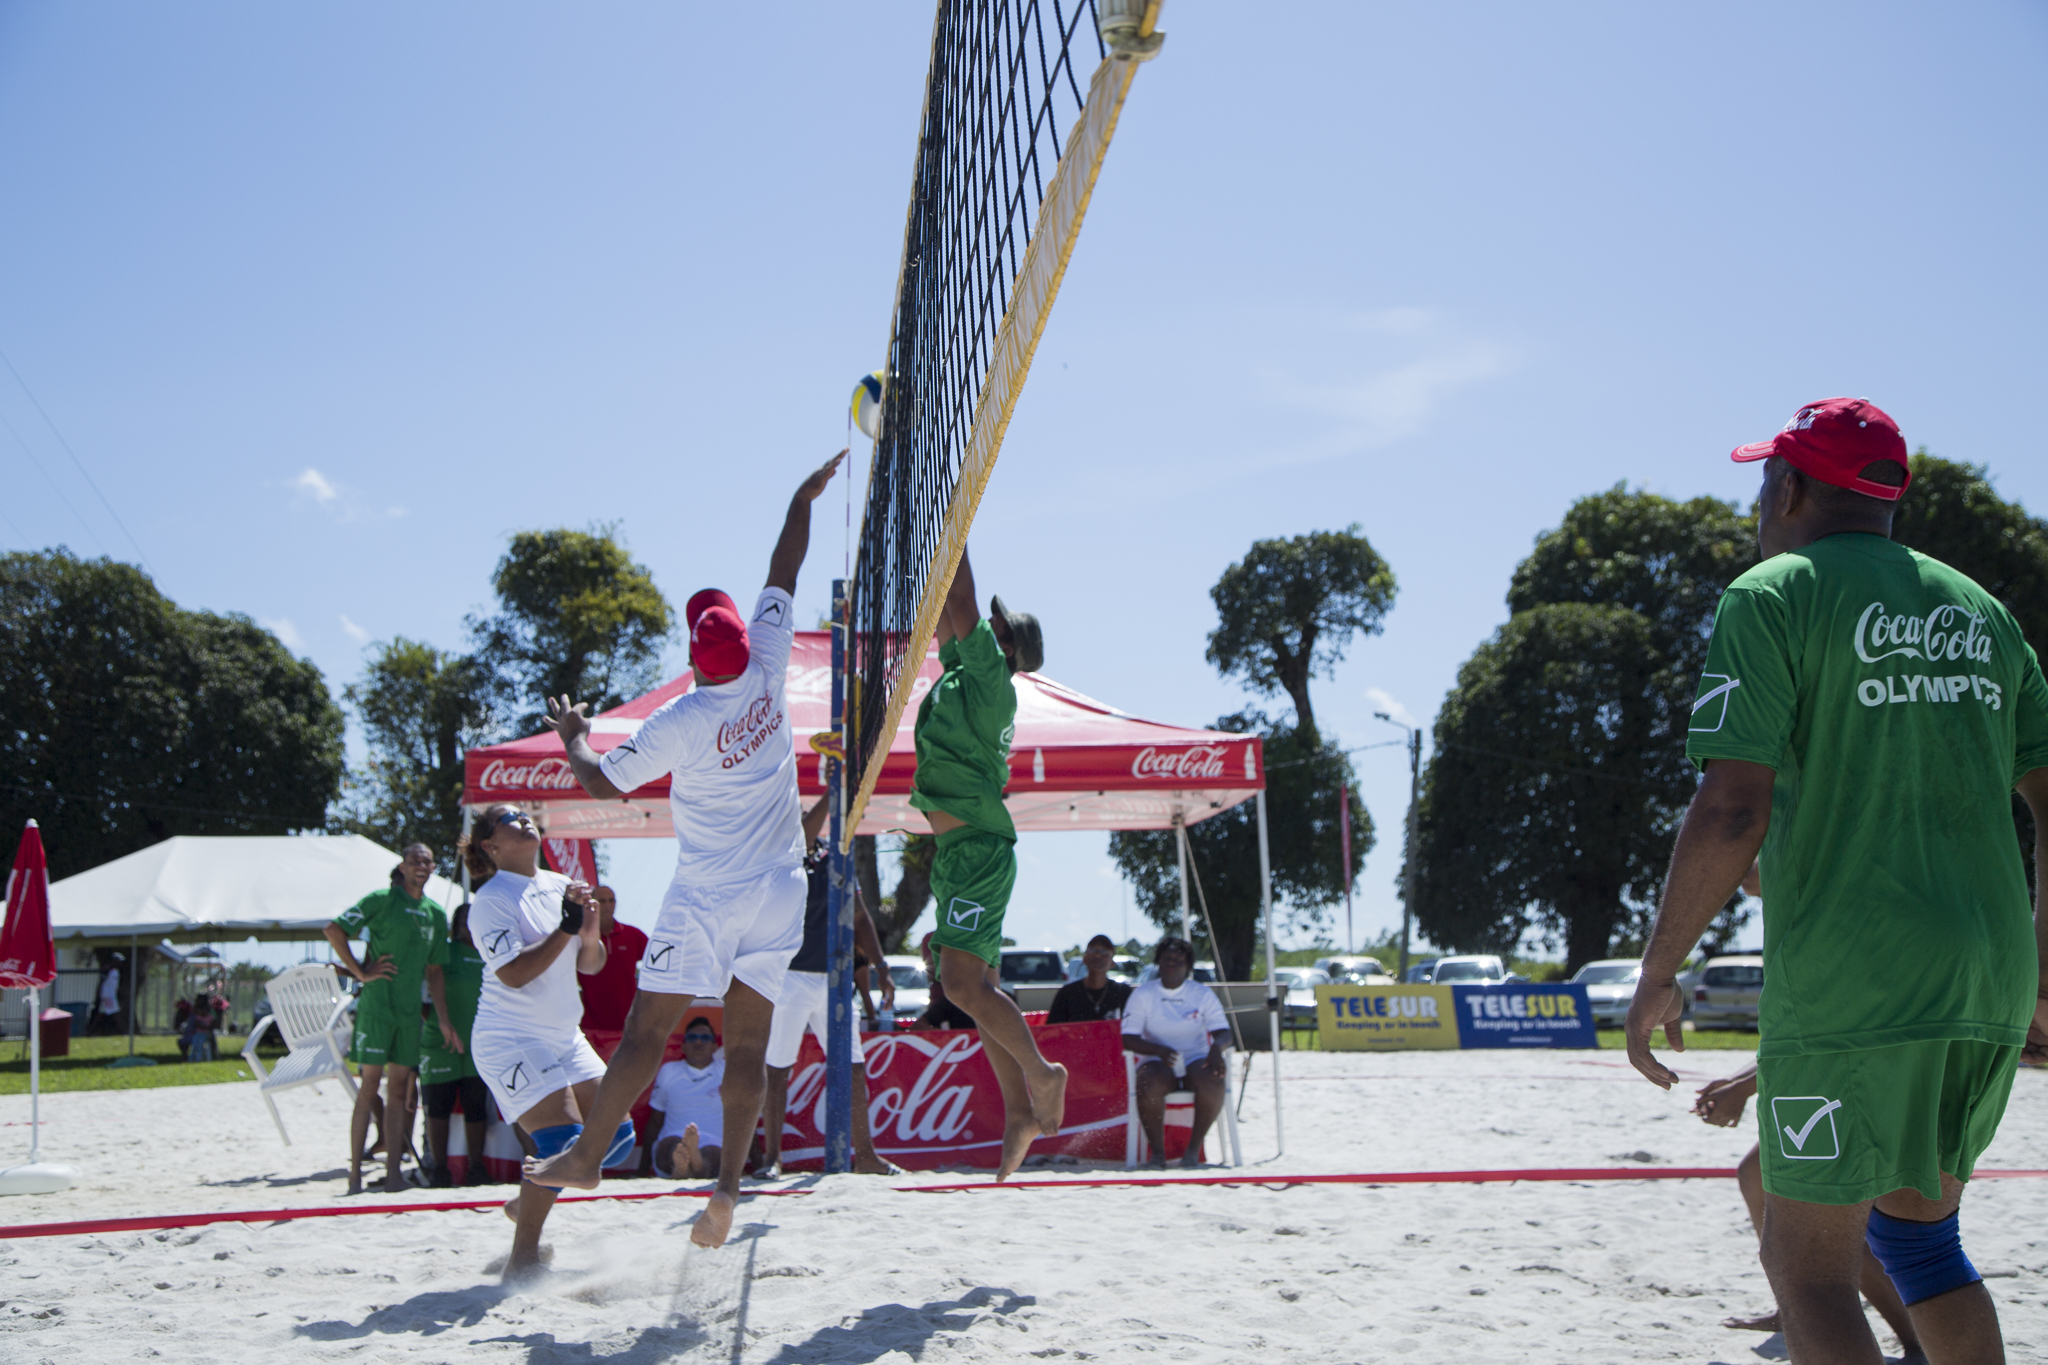 Finale beachvolleybal Fernandes Group Coca-Cola Olympics 2016